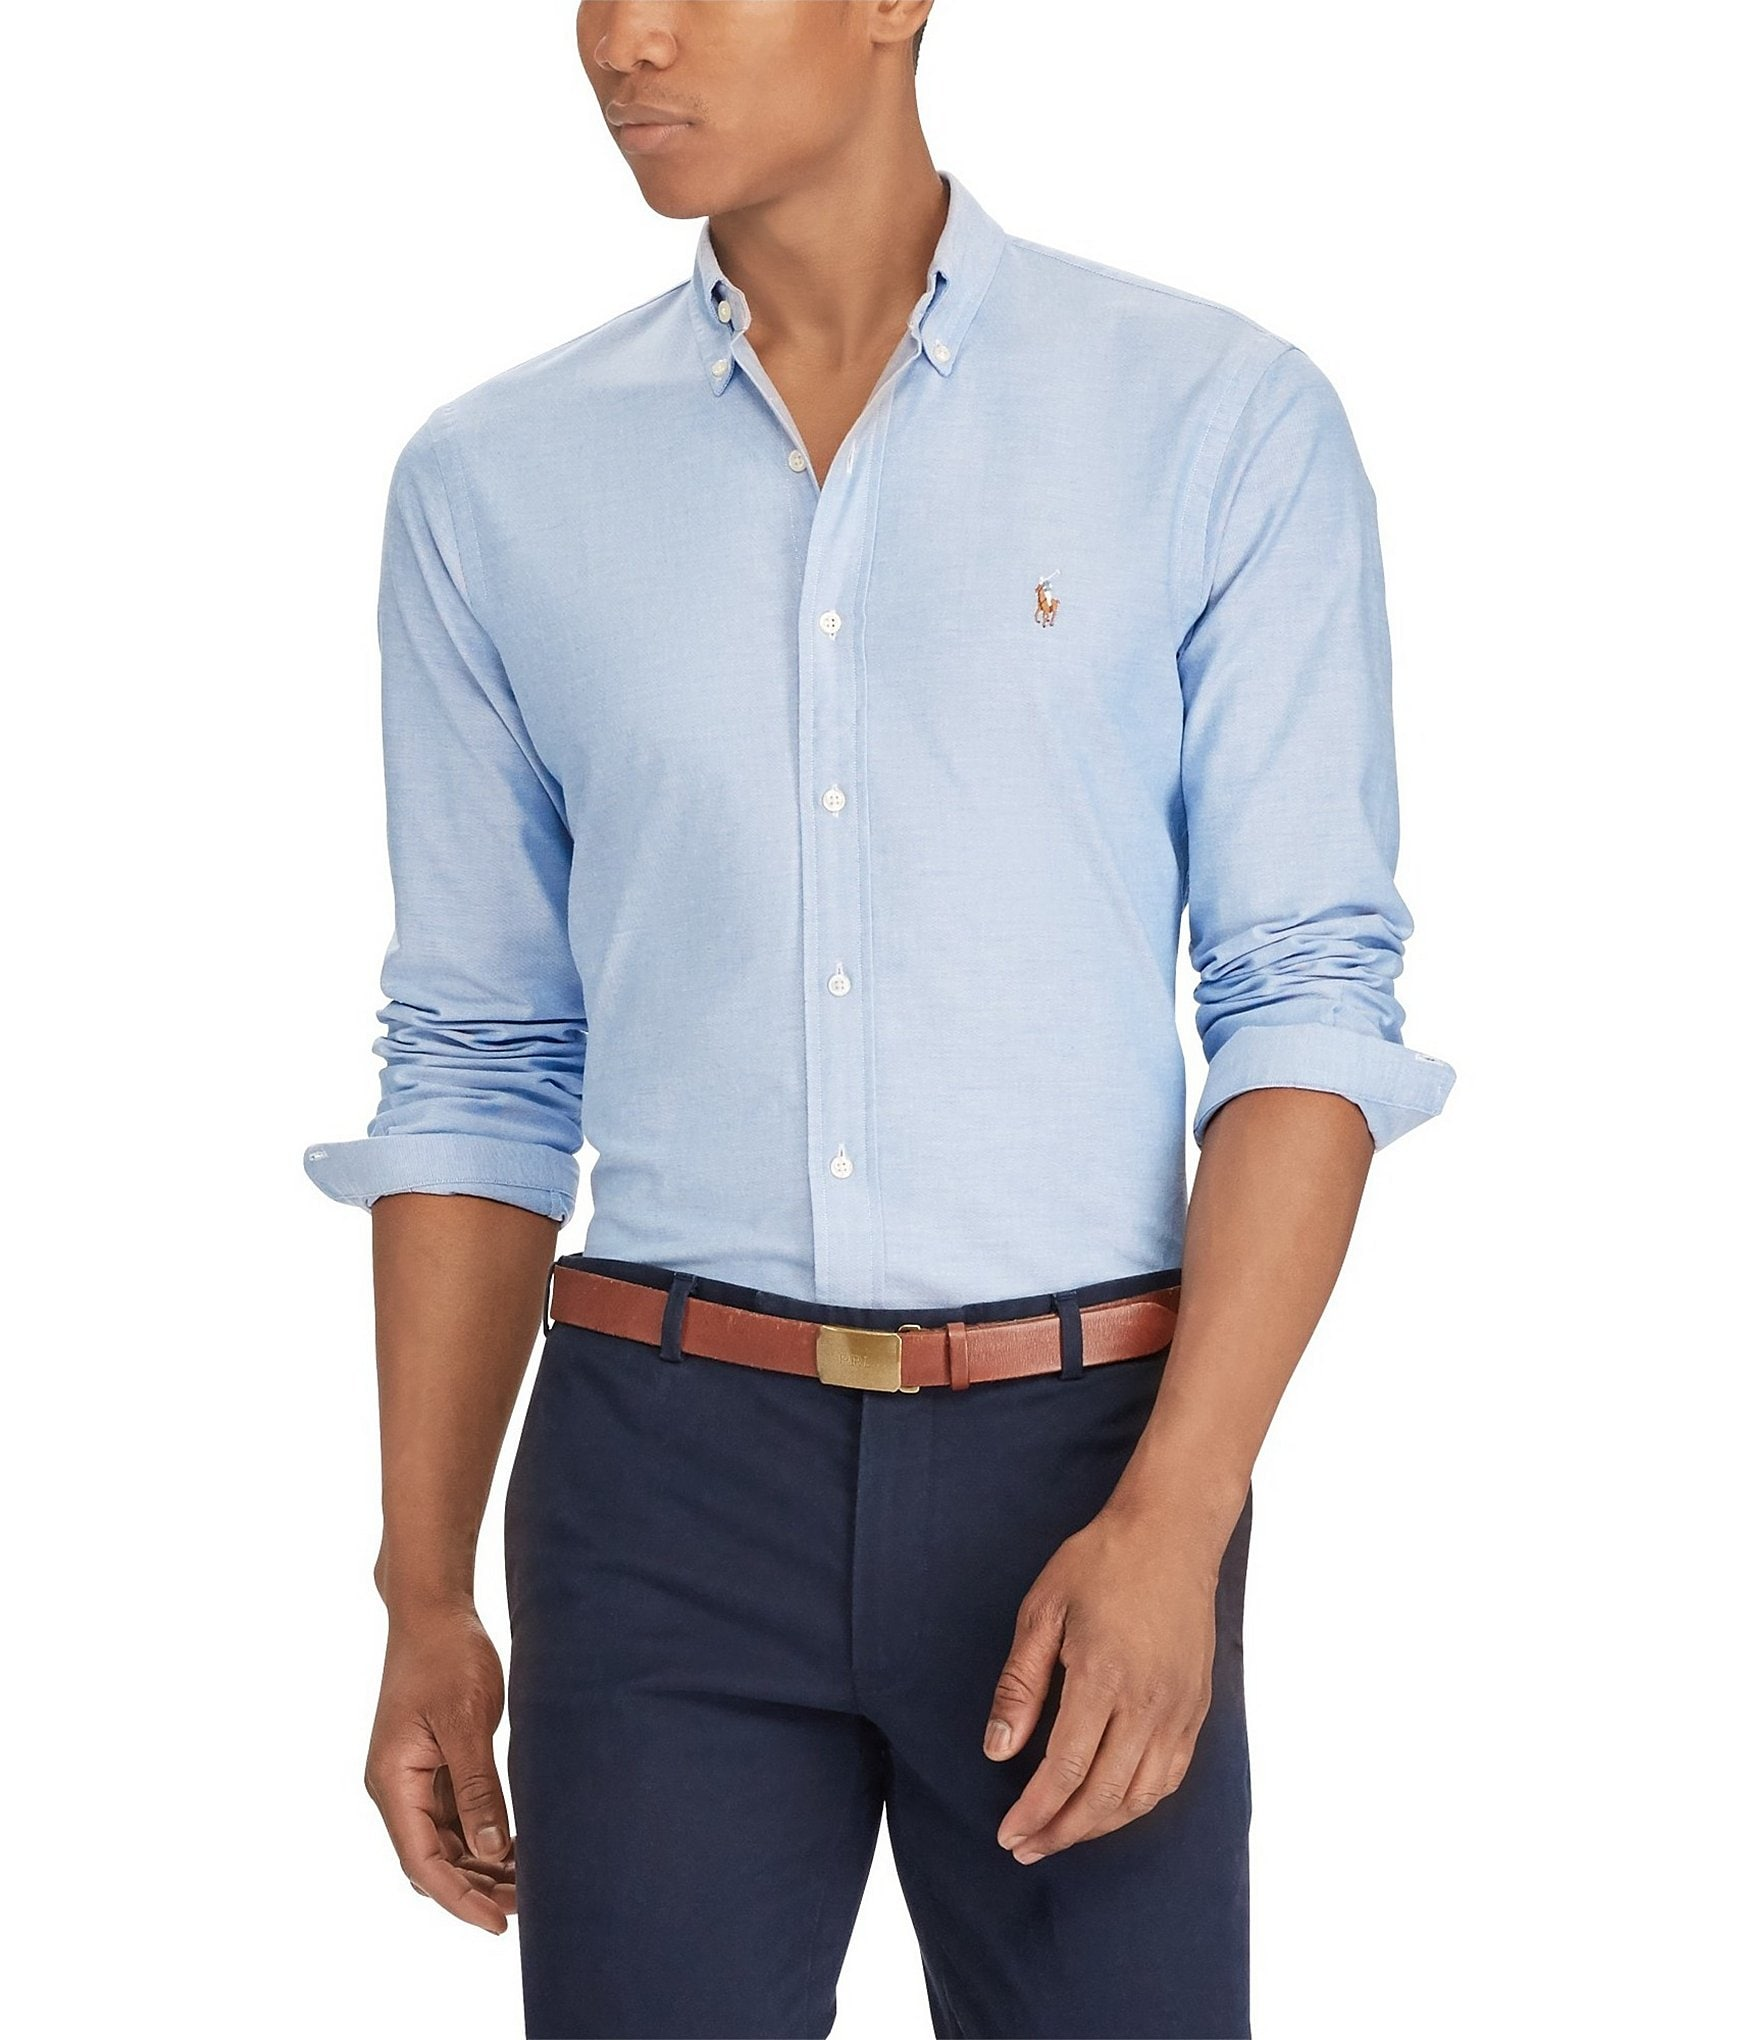 Polo Ralph Lauren Slim-Fit Solid Stretch Oxford Long-Sleeve Woven Shirt |  Dillards